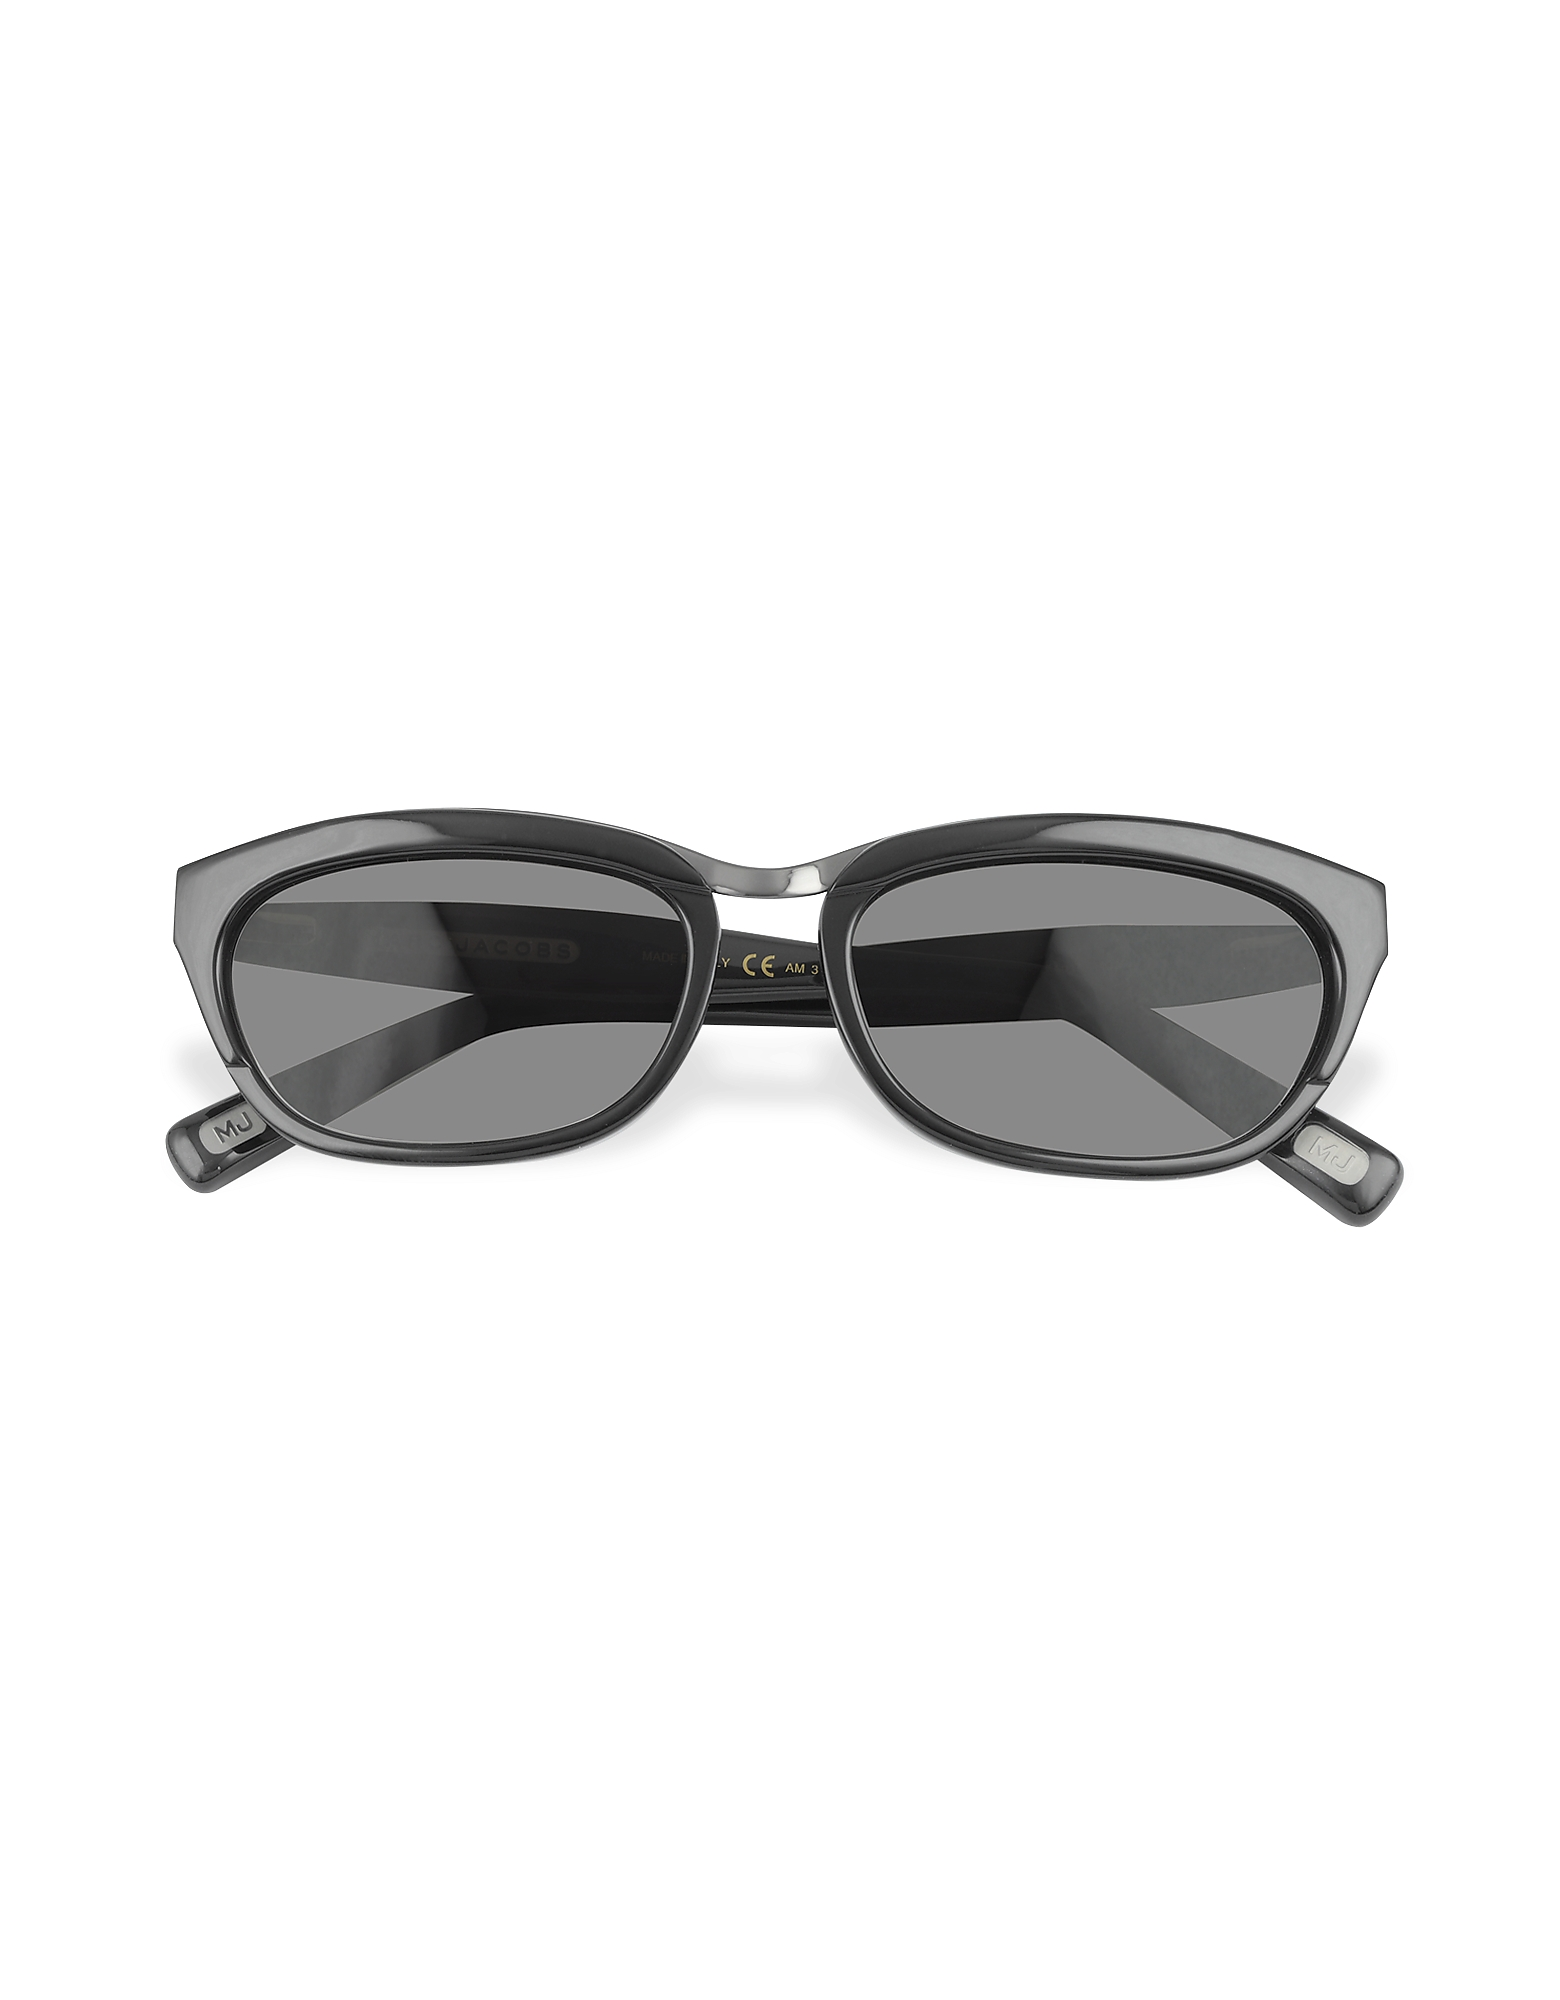 Marc Jacobs Sunglasses, Black Teacup Sunglasses